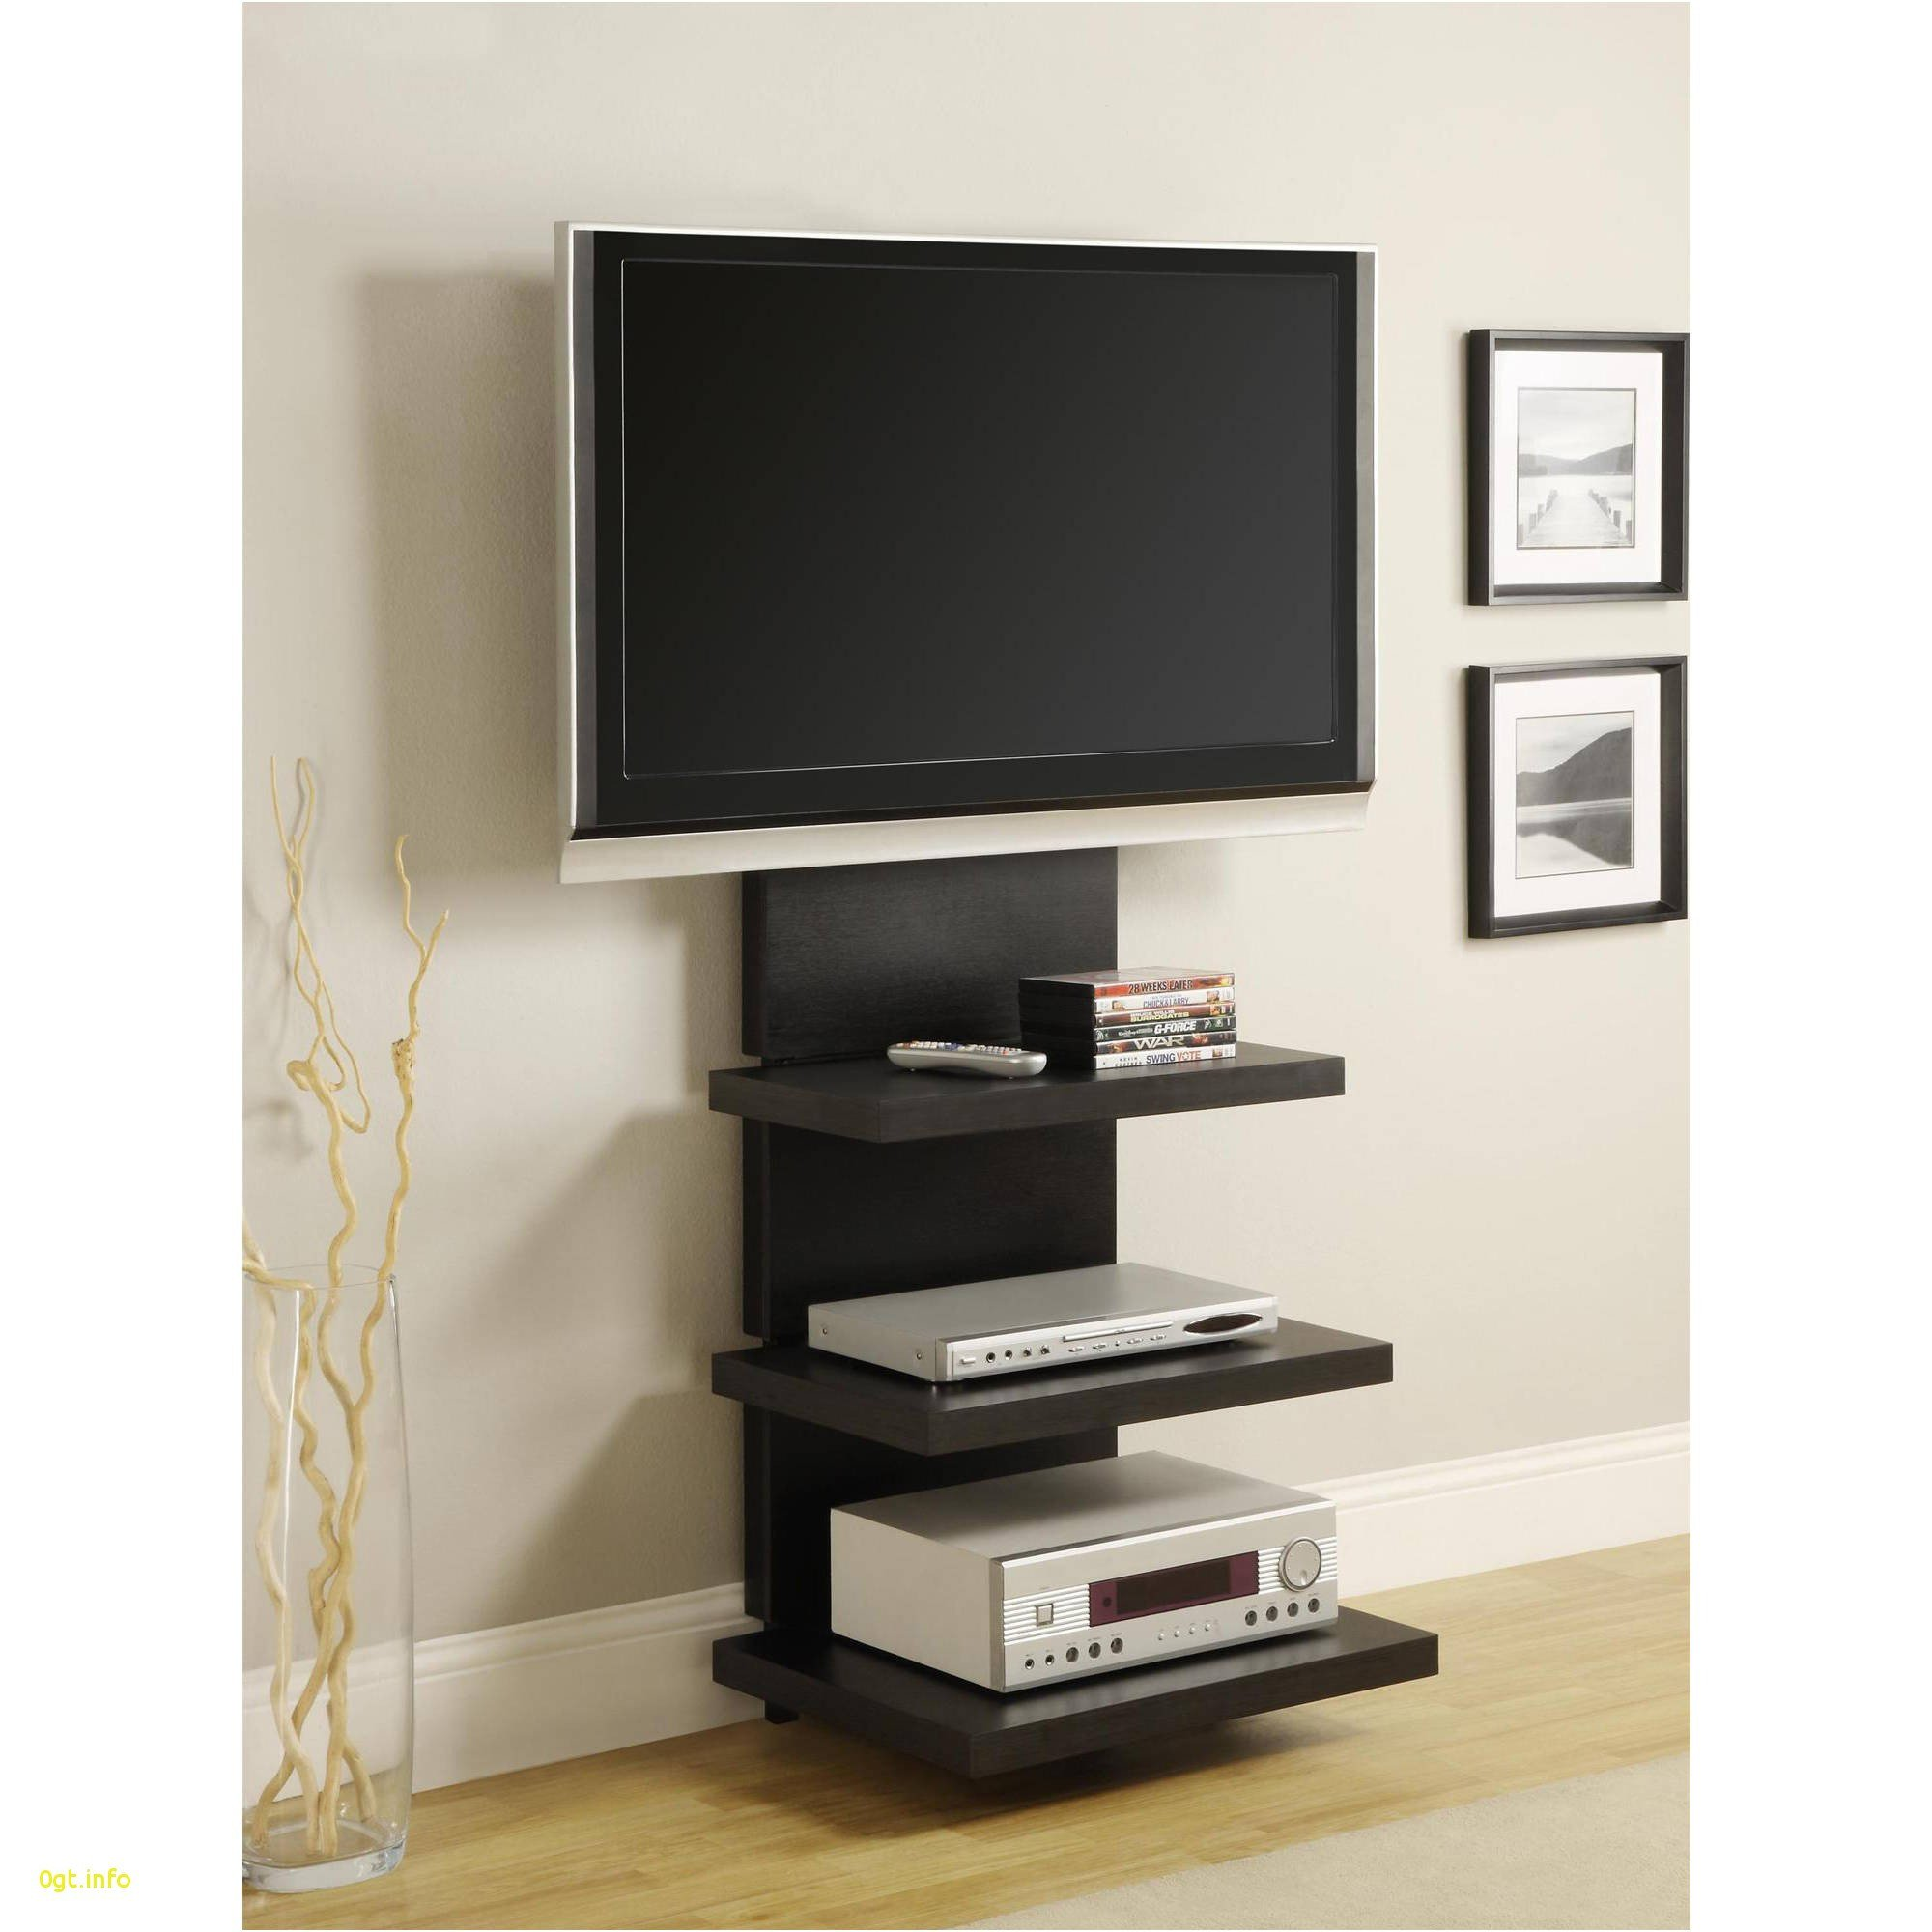 Wall Mounted Tv Ideas Bedroom Fresh Ideas Small Tv Stand for Bedroom A Bud Stands Creative